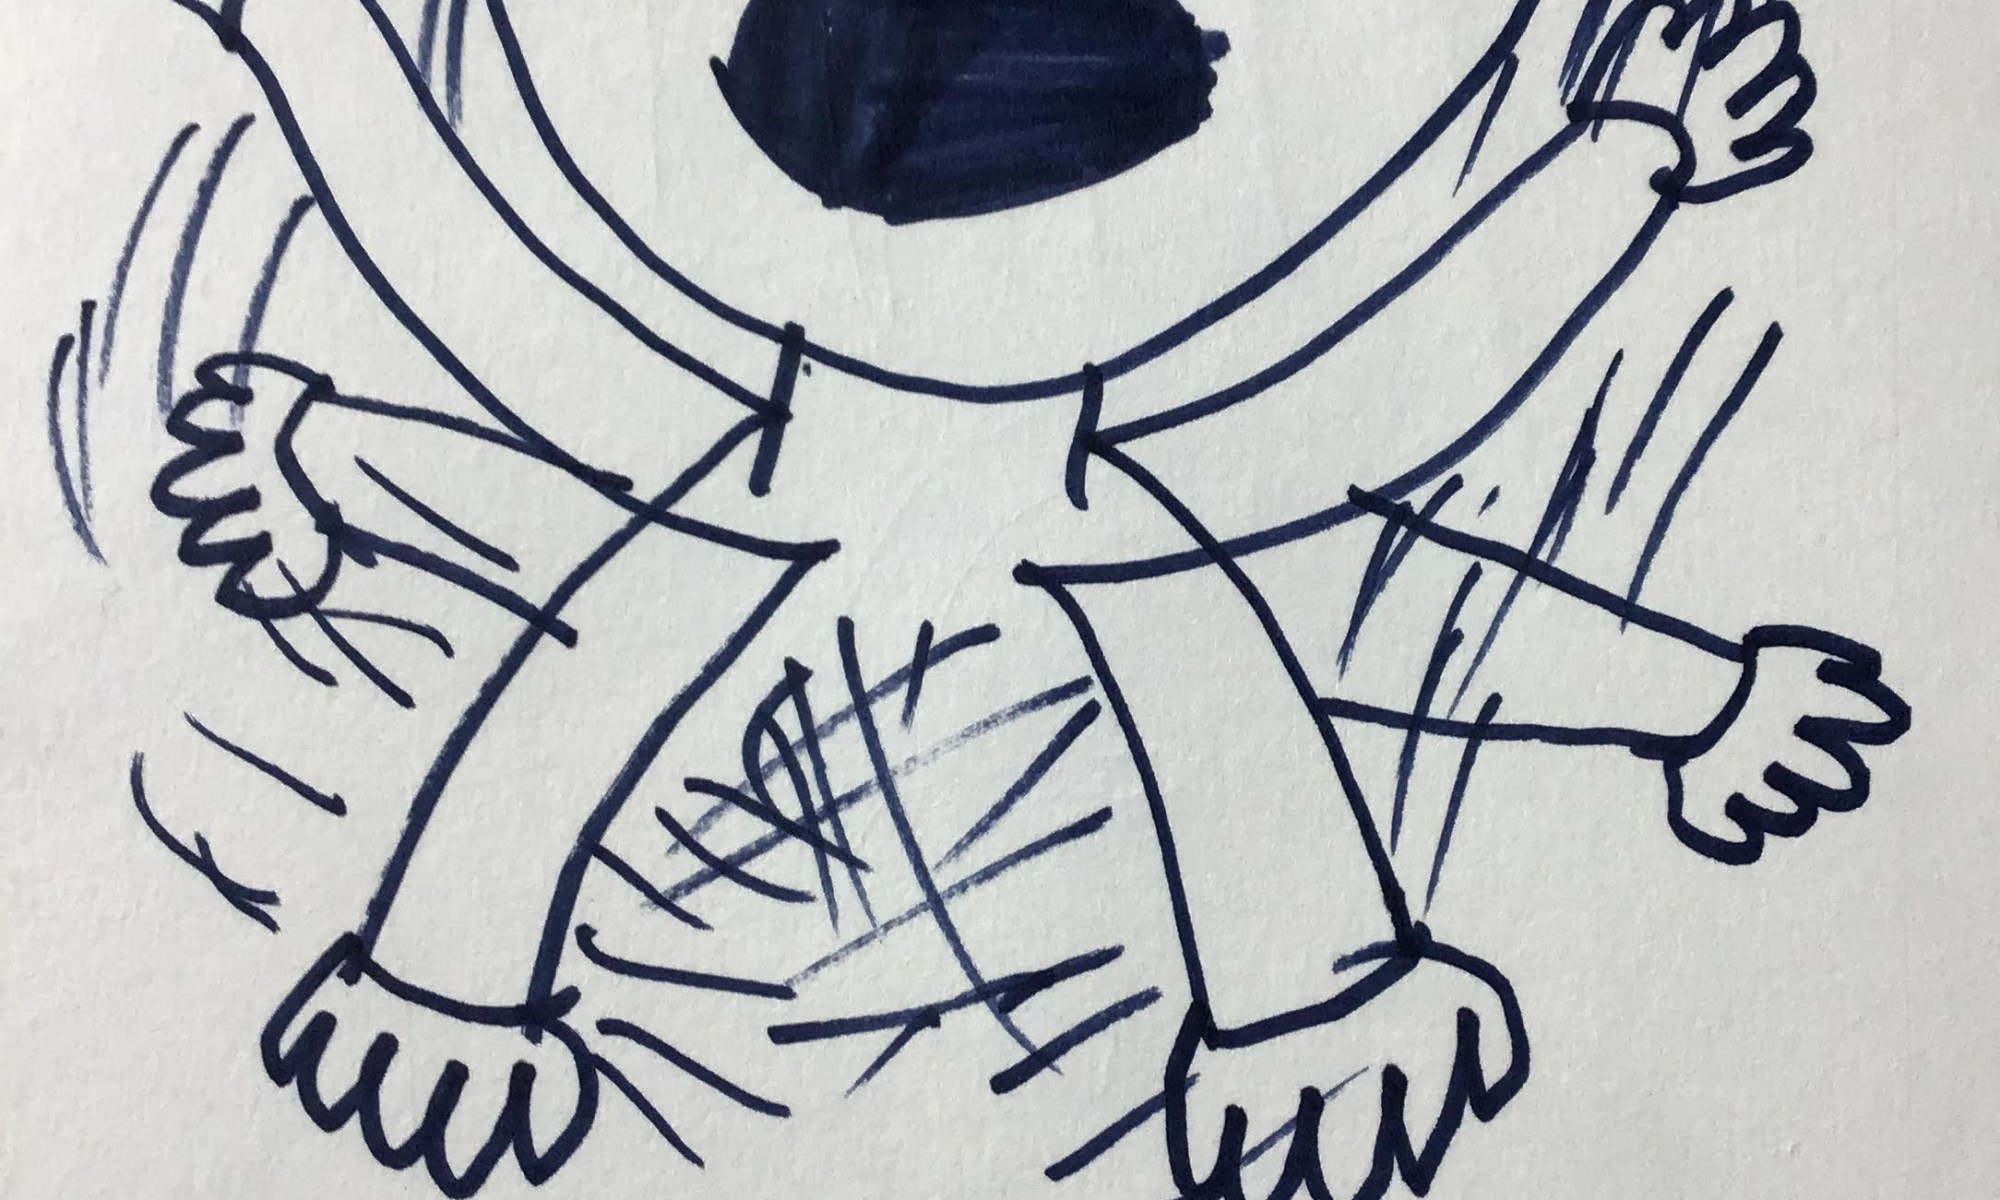 a child's drawing a person experienceing panick, with arms waving and distraught face